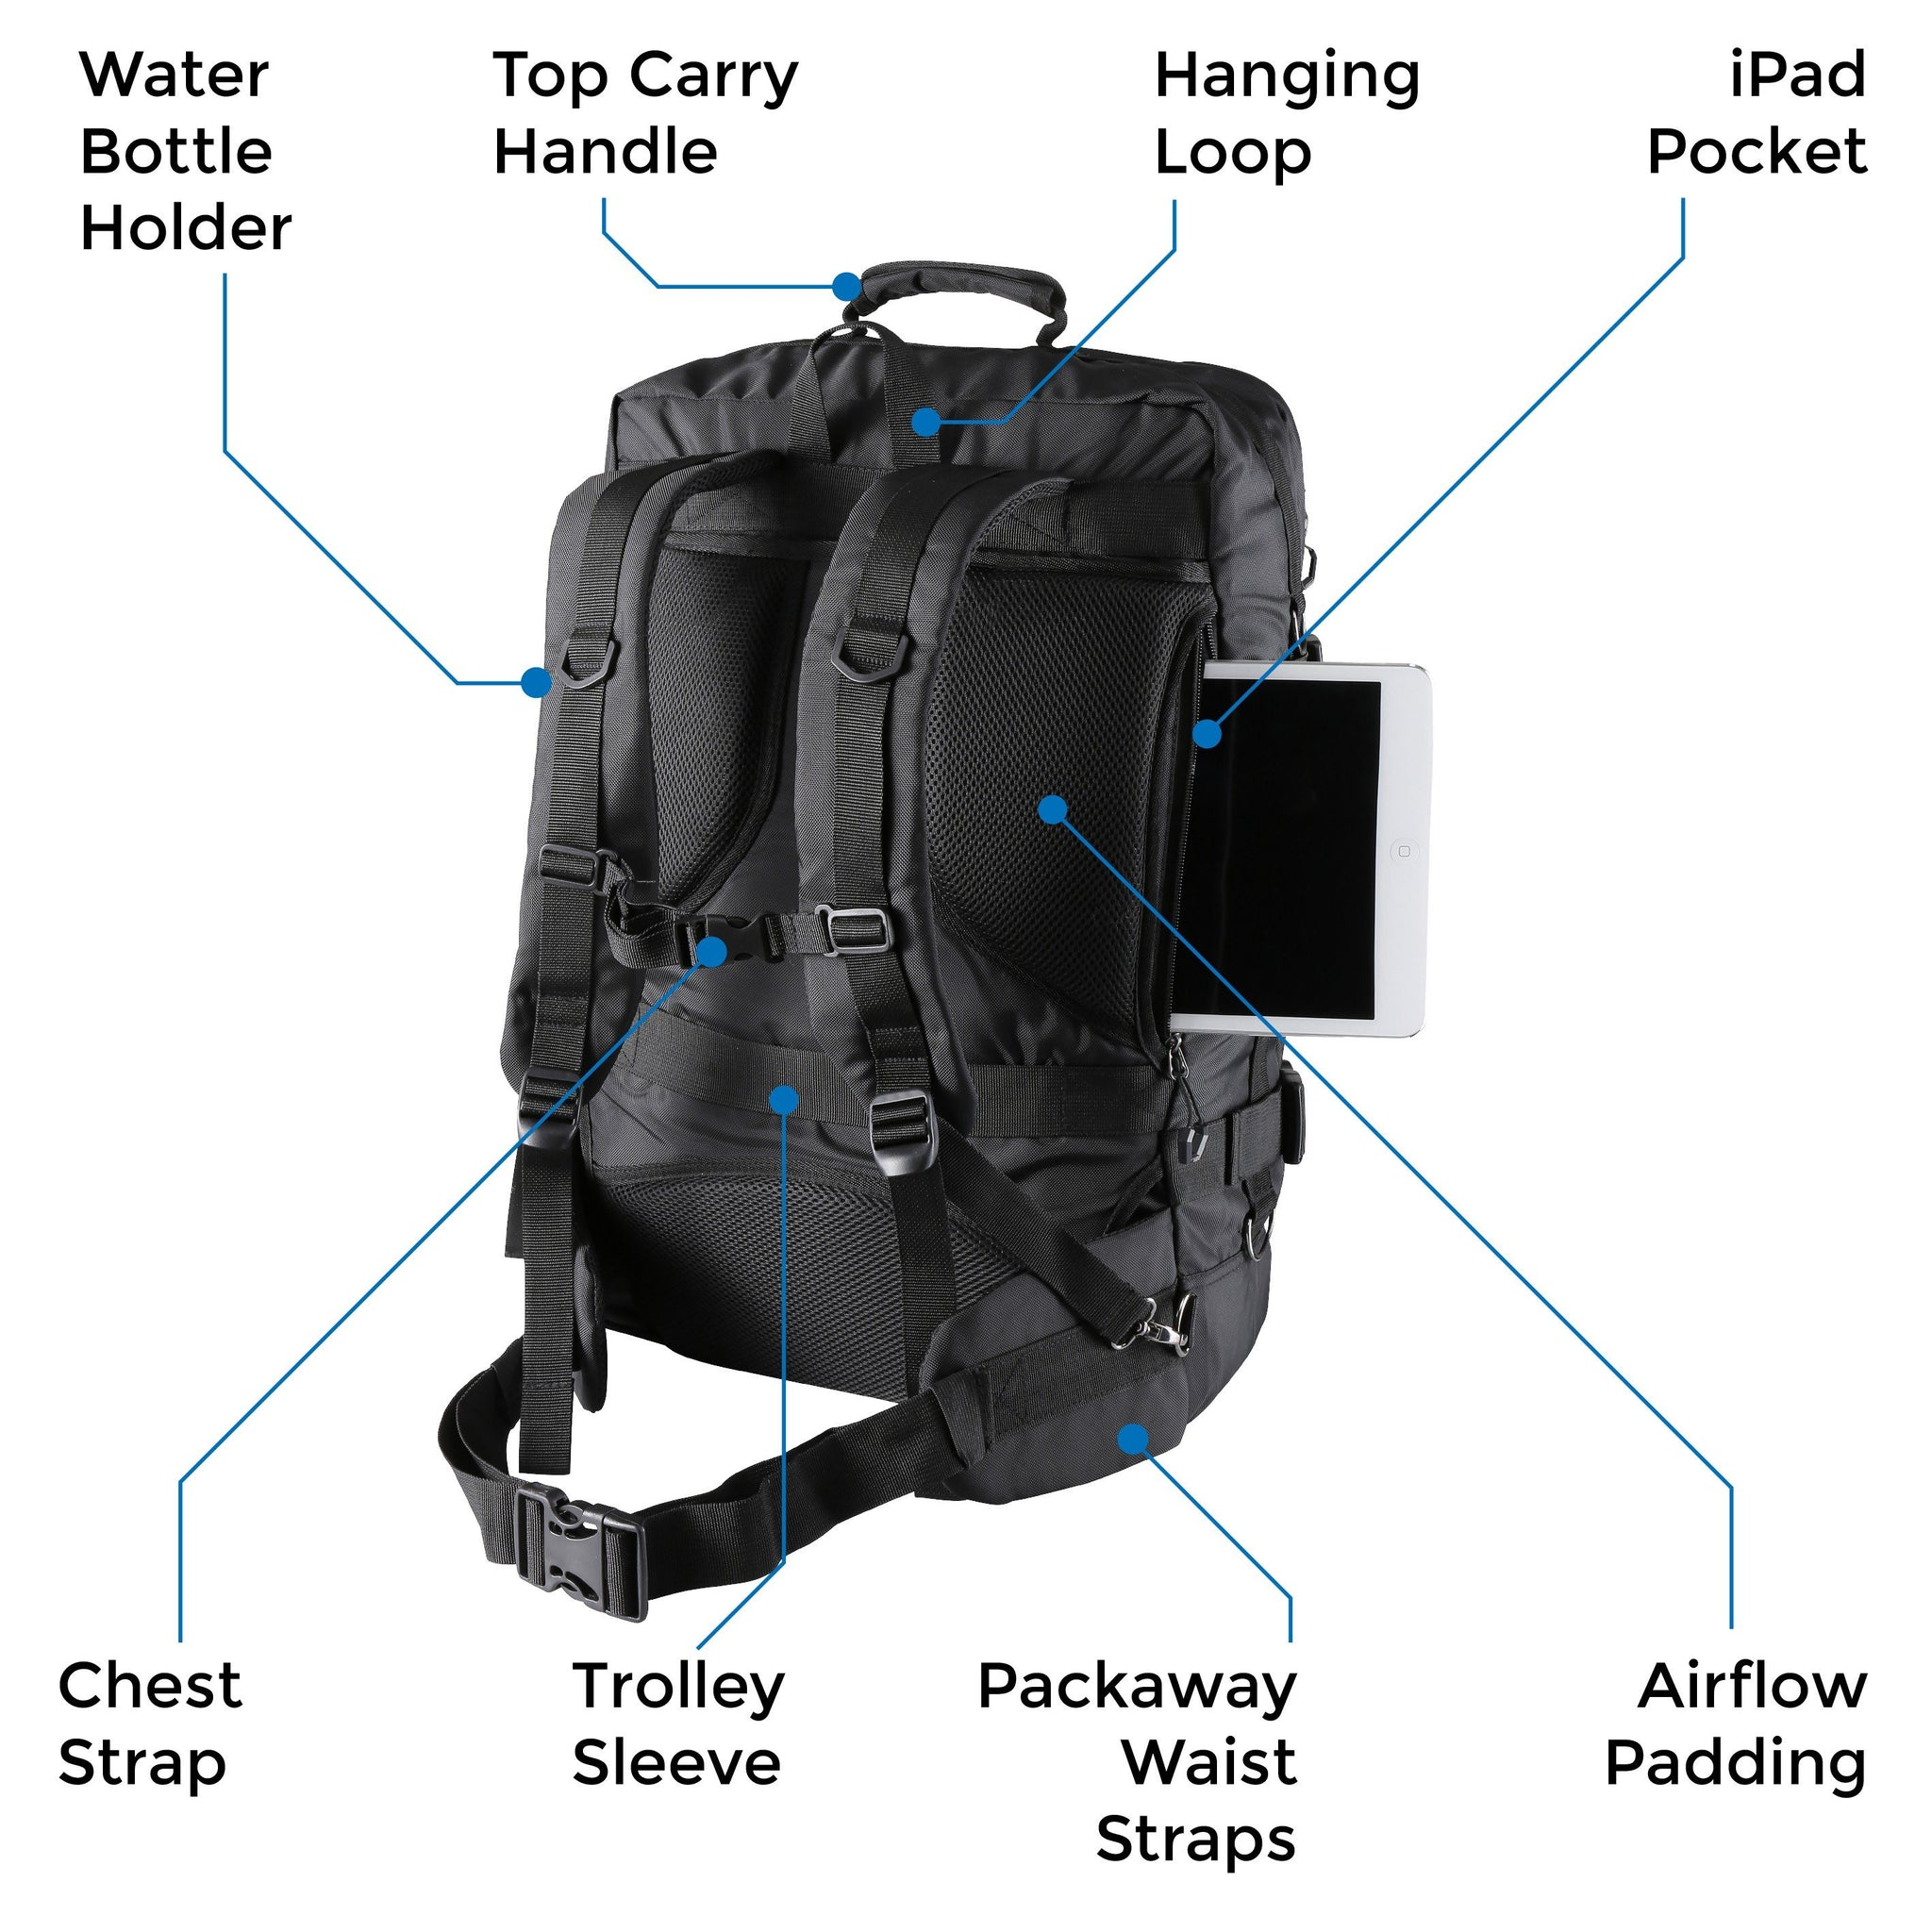 Metz Plus Cabin Backpack & Shoulder Bag with Laptop and iPad Storage - Cabin Max